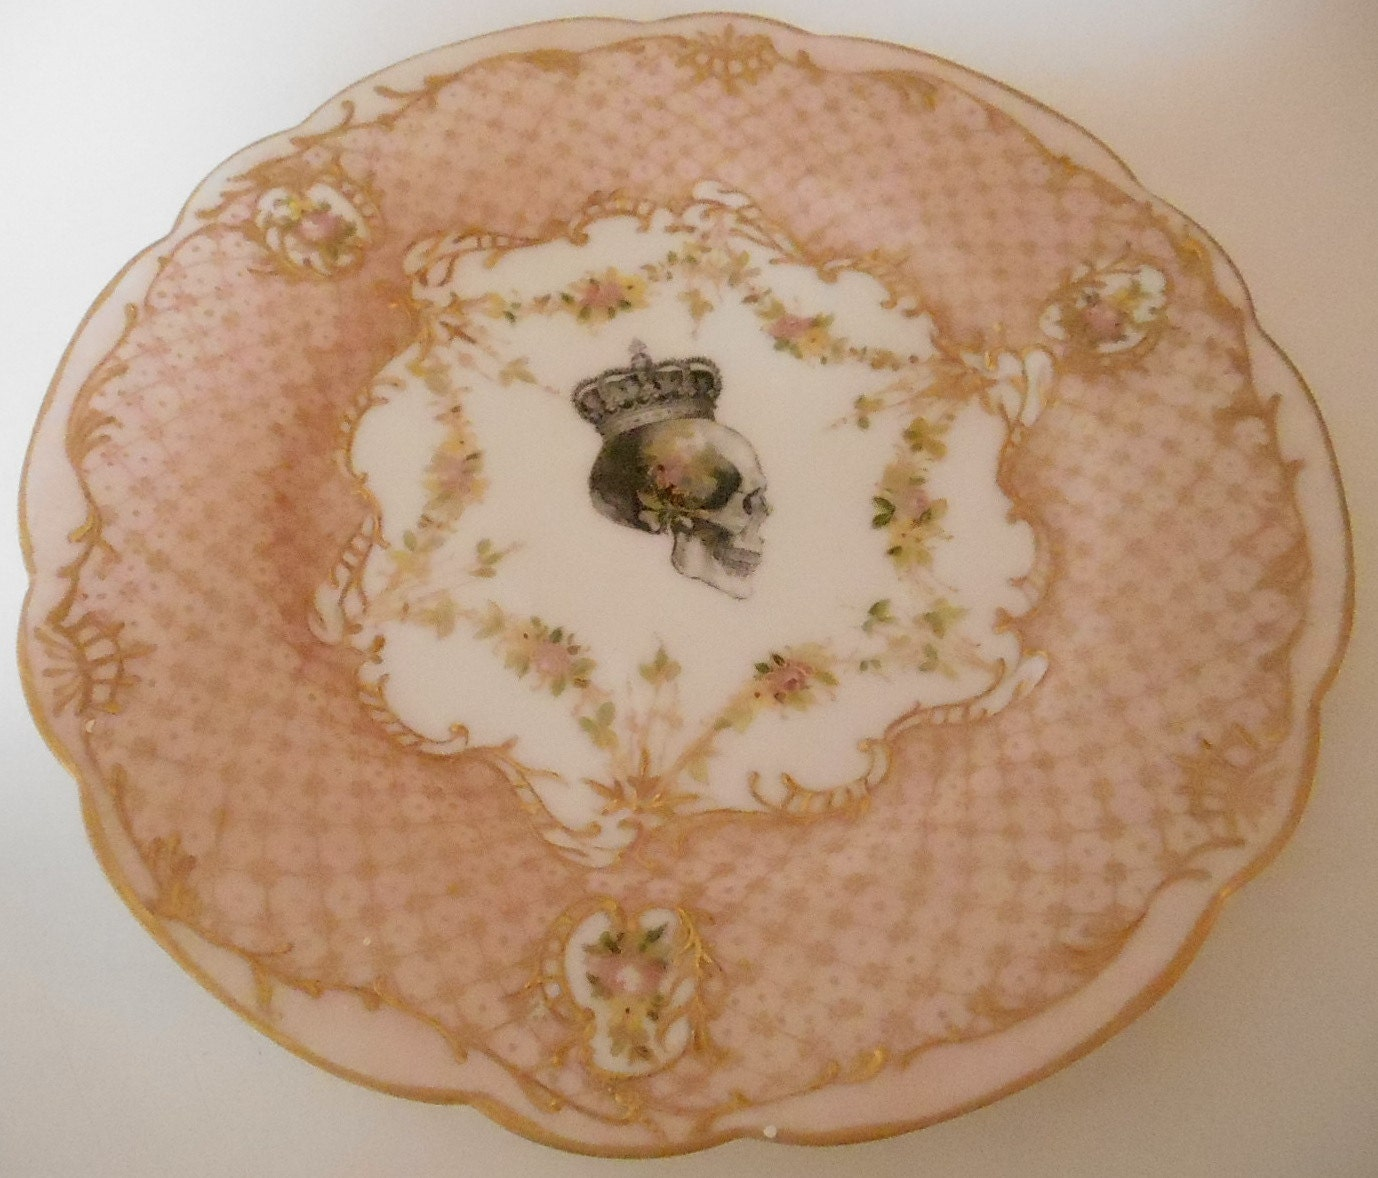 ... insect plates insect dishes pink gold dinnerware pink gold set pink gold plate pink gold plates pink plates. pink plate pink skull & Ornate Gold and Pink Skull Plate (Salad or Dessert - 7\